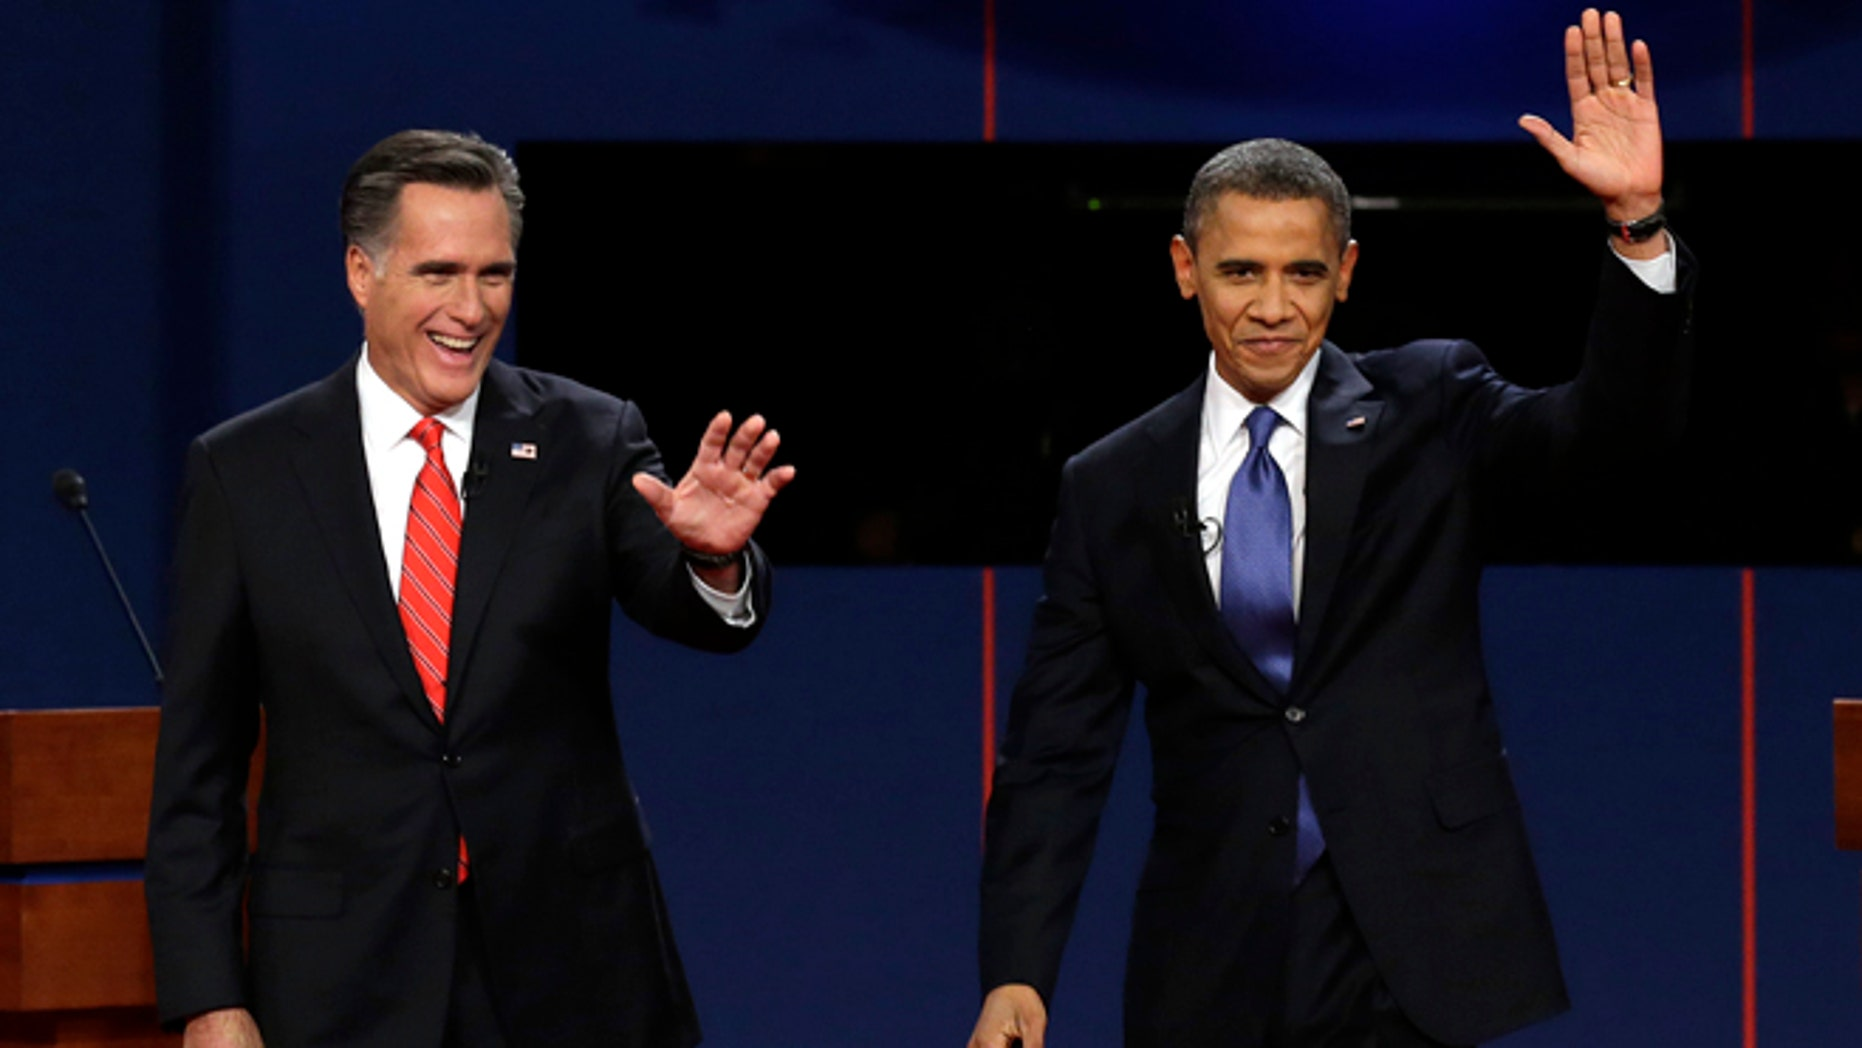 FILE: Oct. 3, 2012: Mitt Romney and President Obama during the first presidential debate at the University of Denver in Denver.